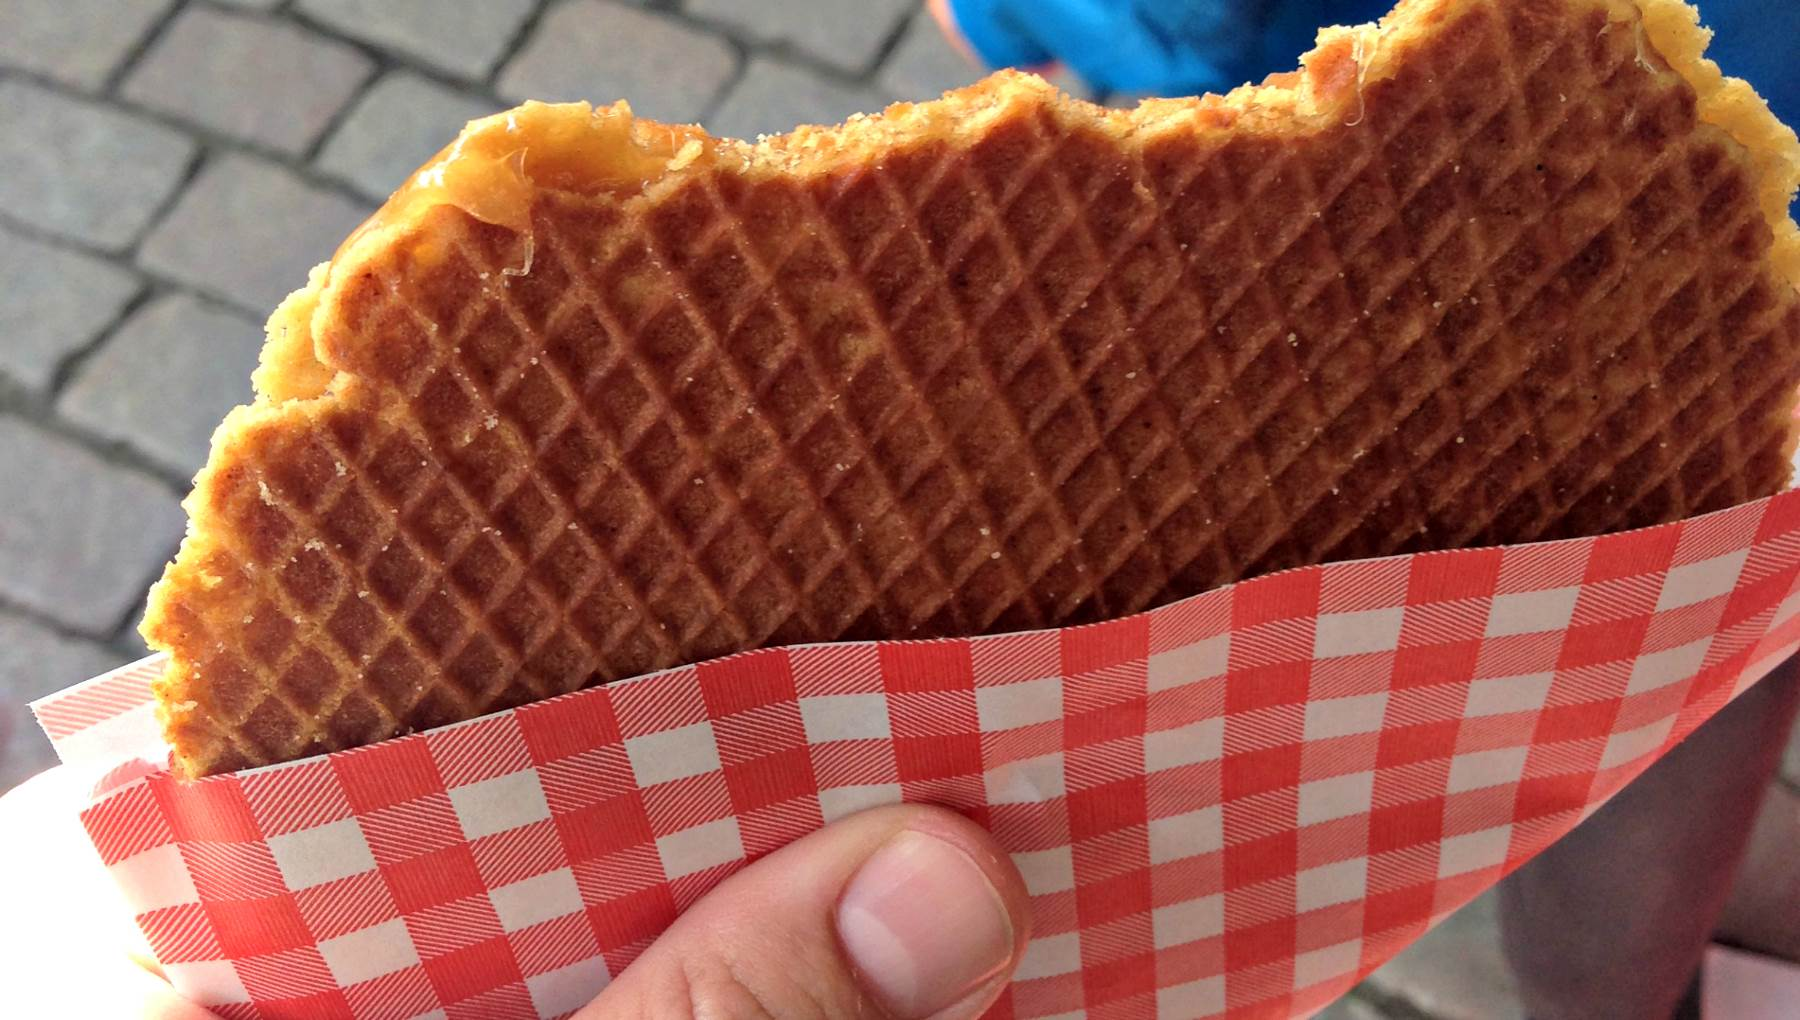 https://i2.wp.com/www.iamsterdam.com/media/typically-dutch/stroopwafel-cc-by-20-steven-vance-via-flickr.jpg